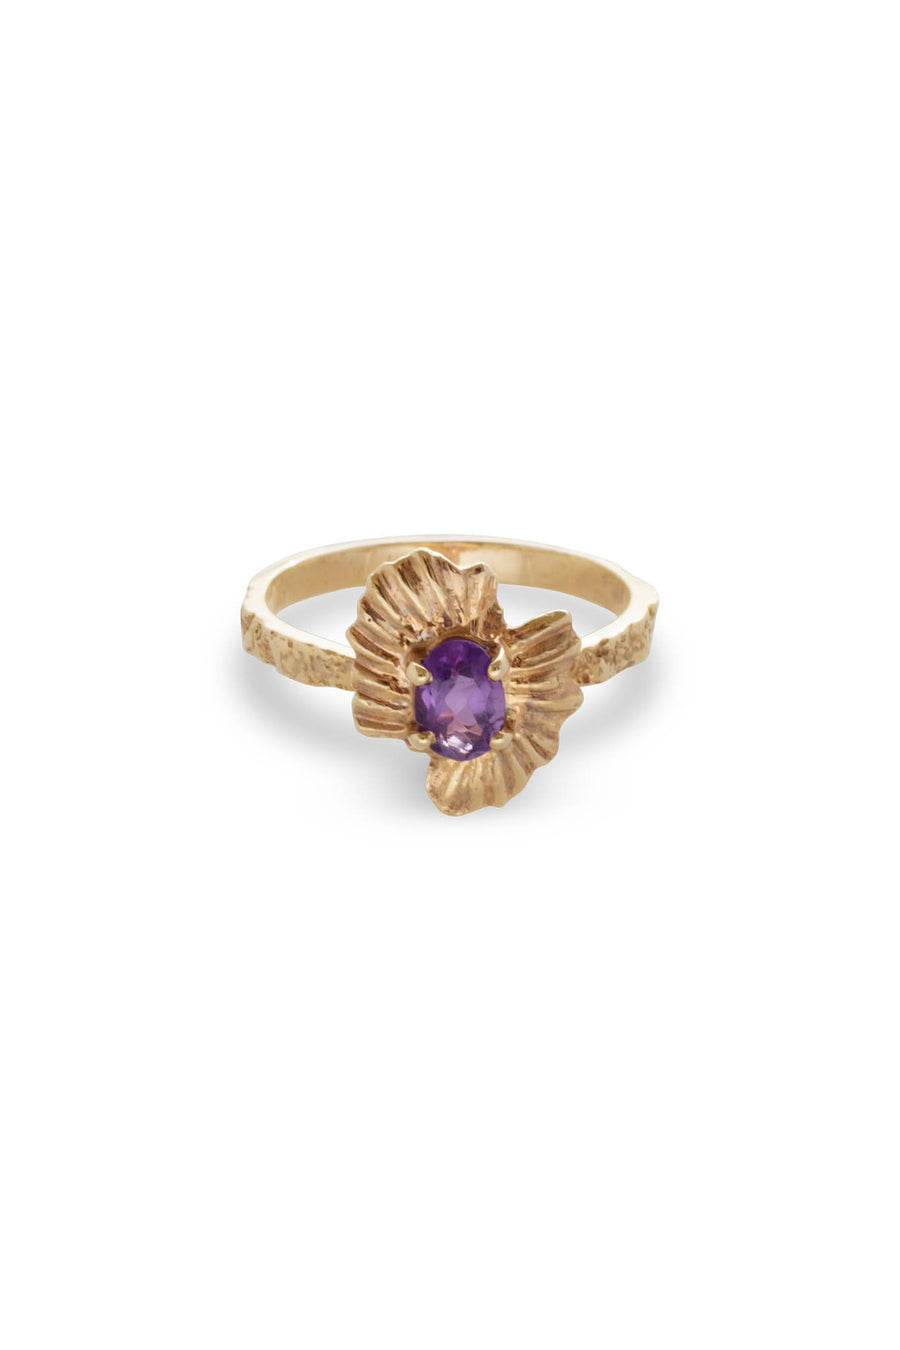 Oval Starburst Shell Moss Textured Ring 14K Yellow Gold